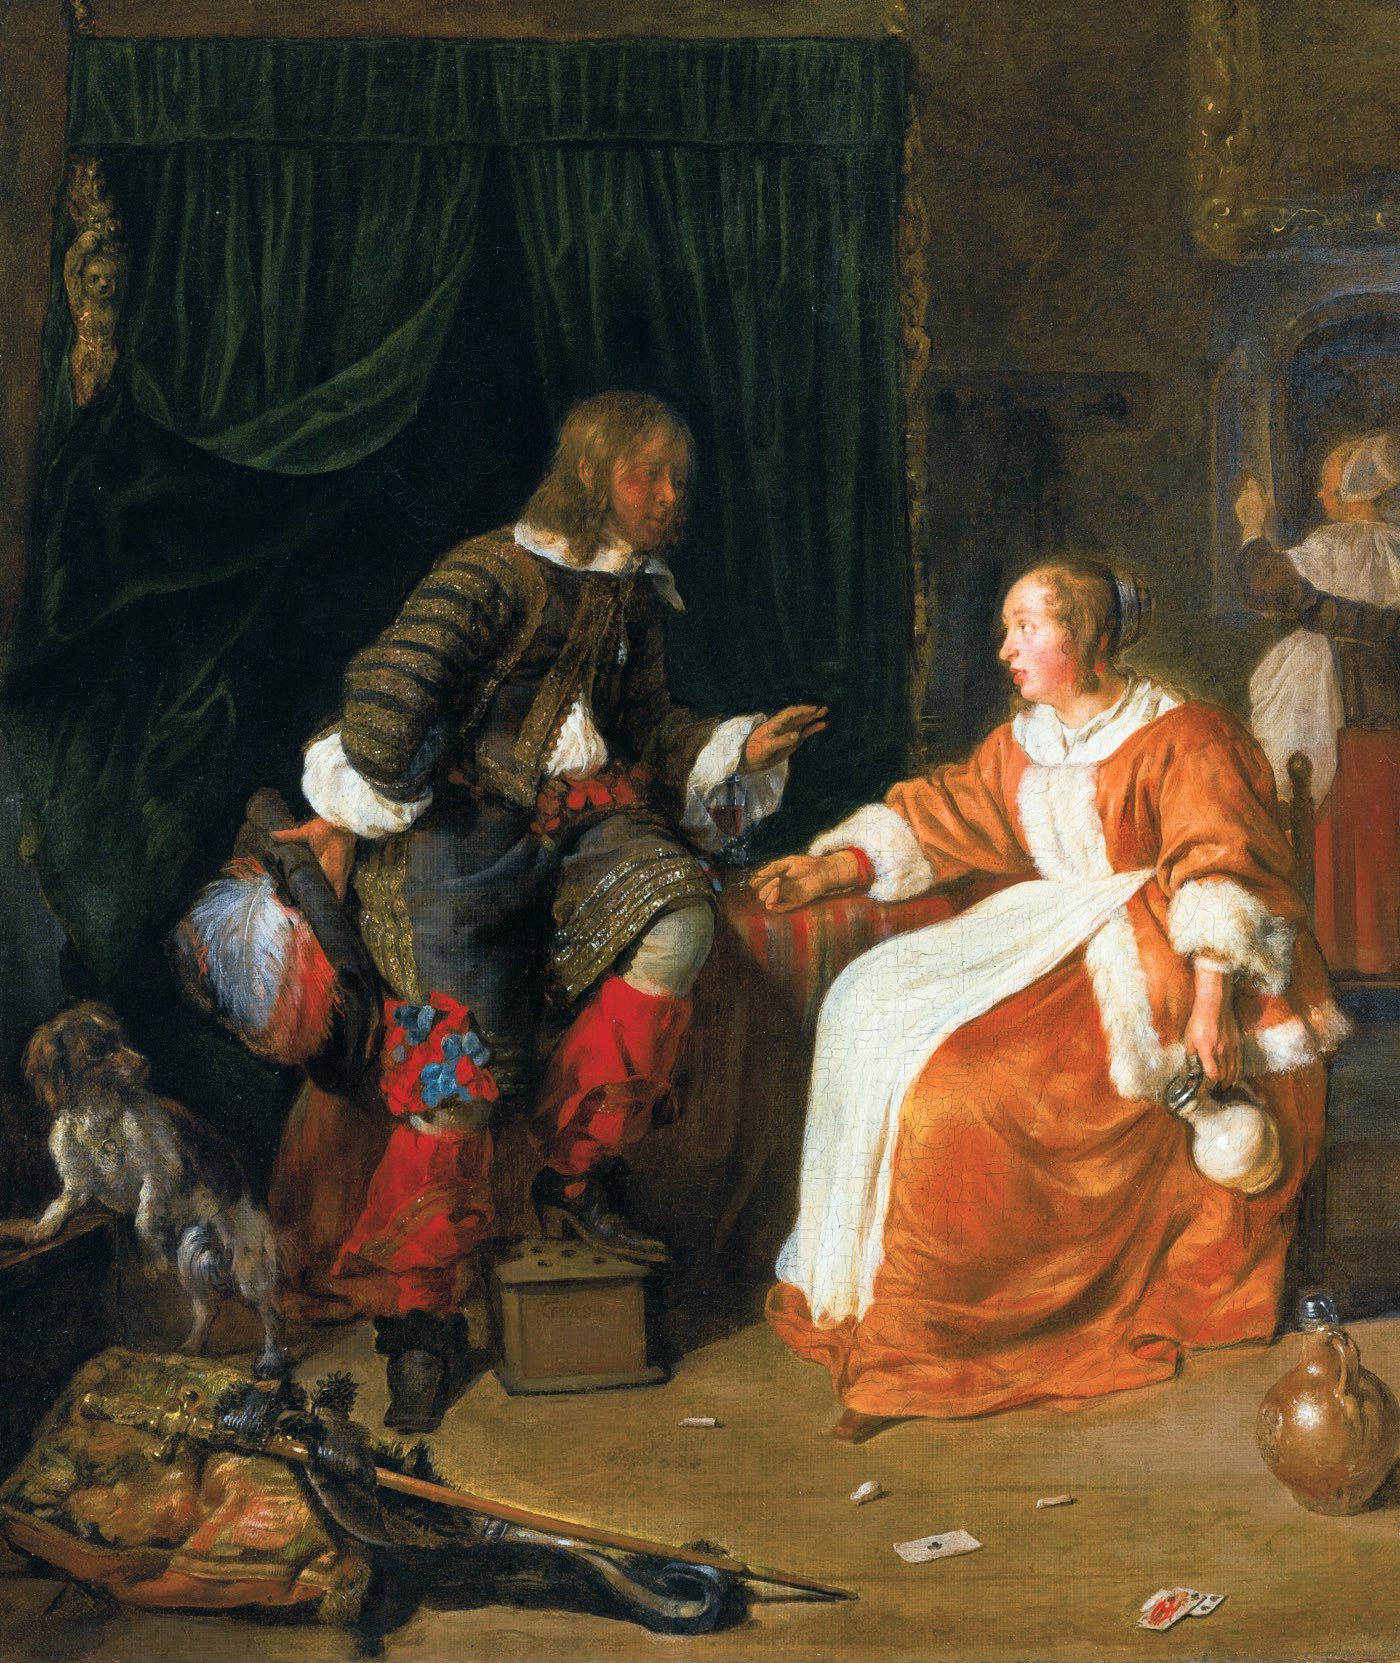 Woman offering a glass of wine to a man, by Gabriel Metsu